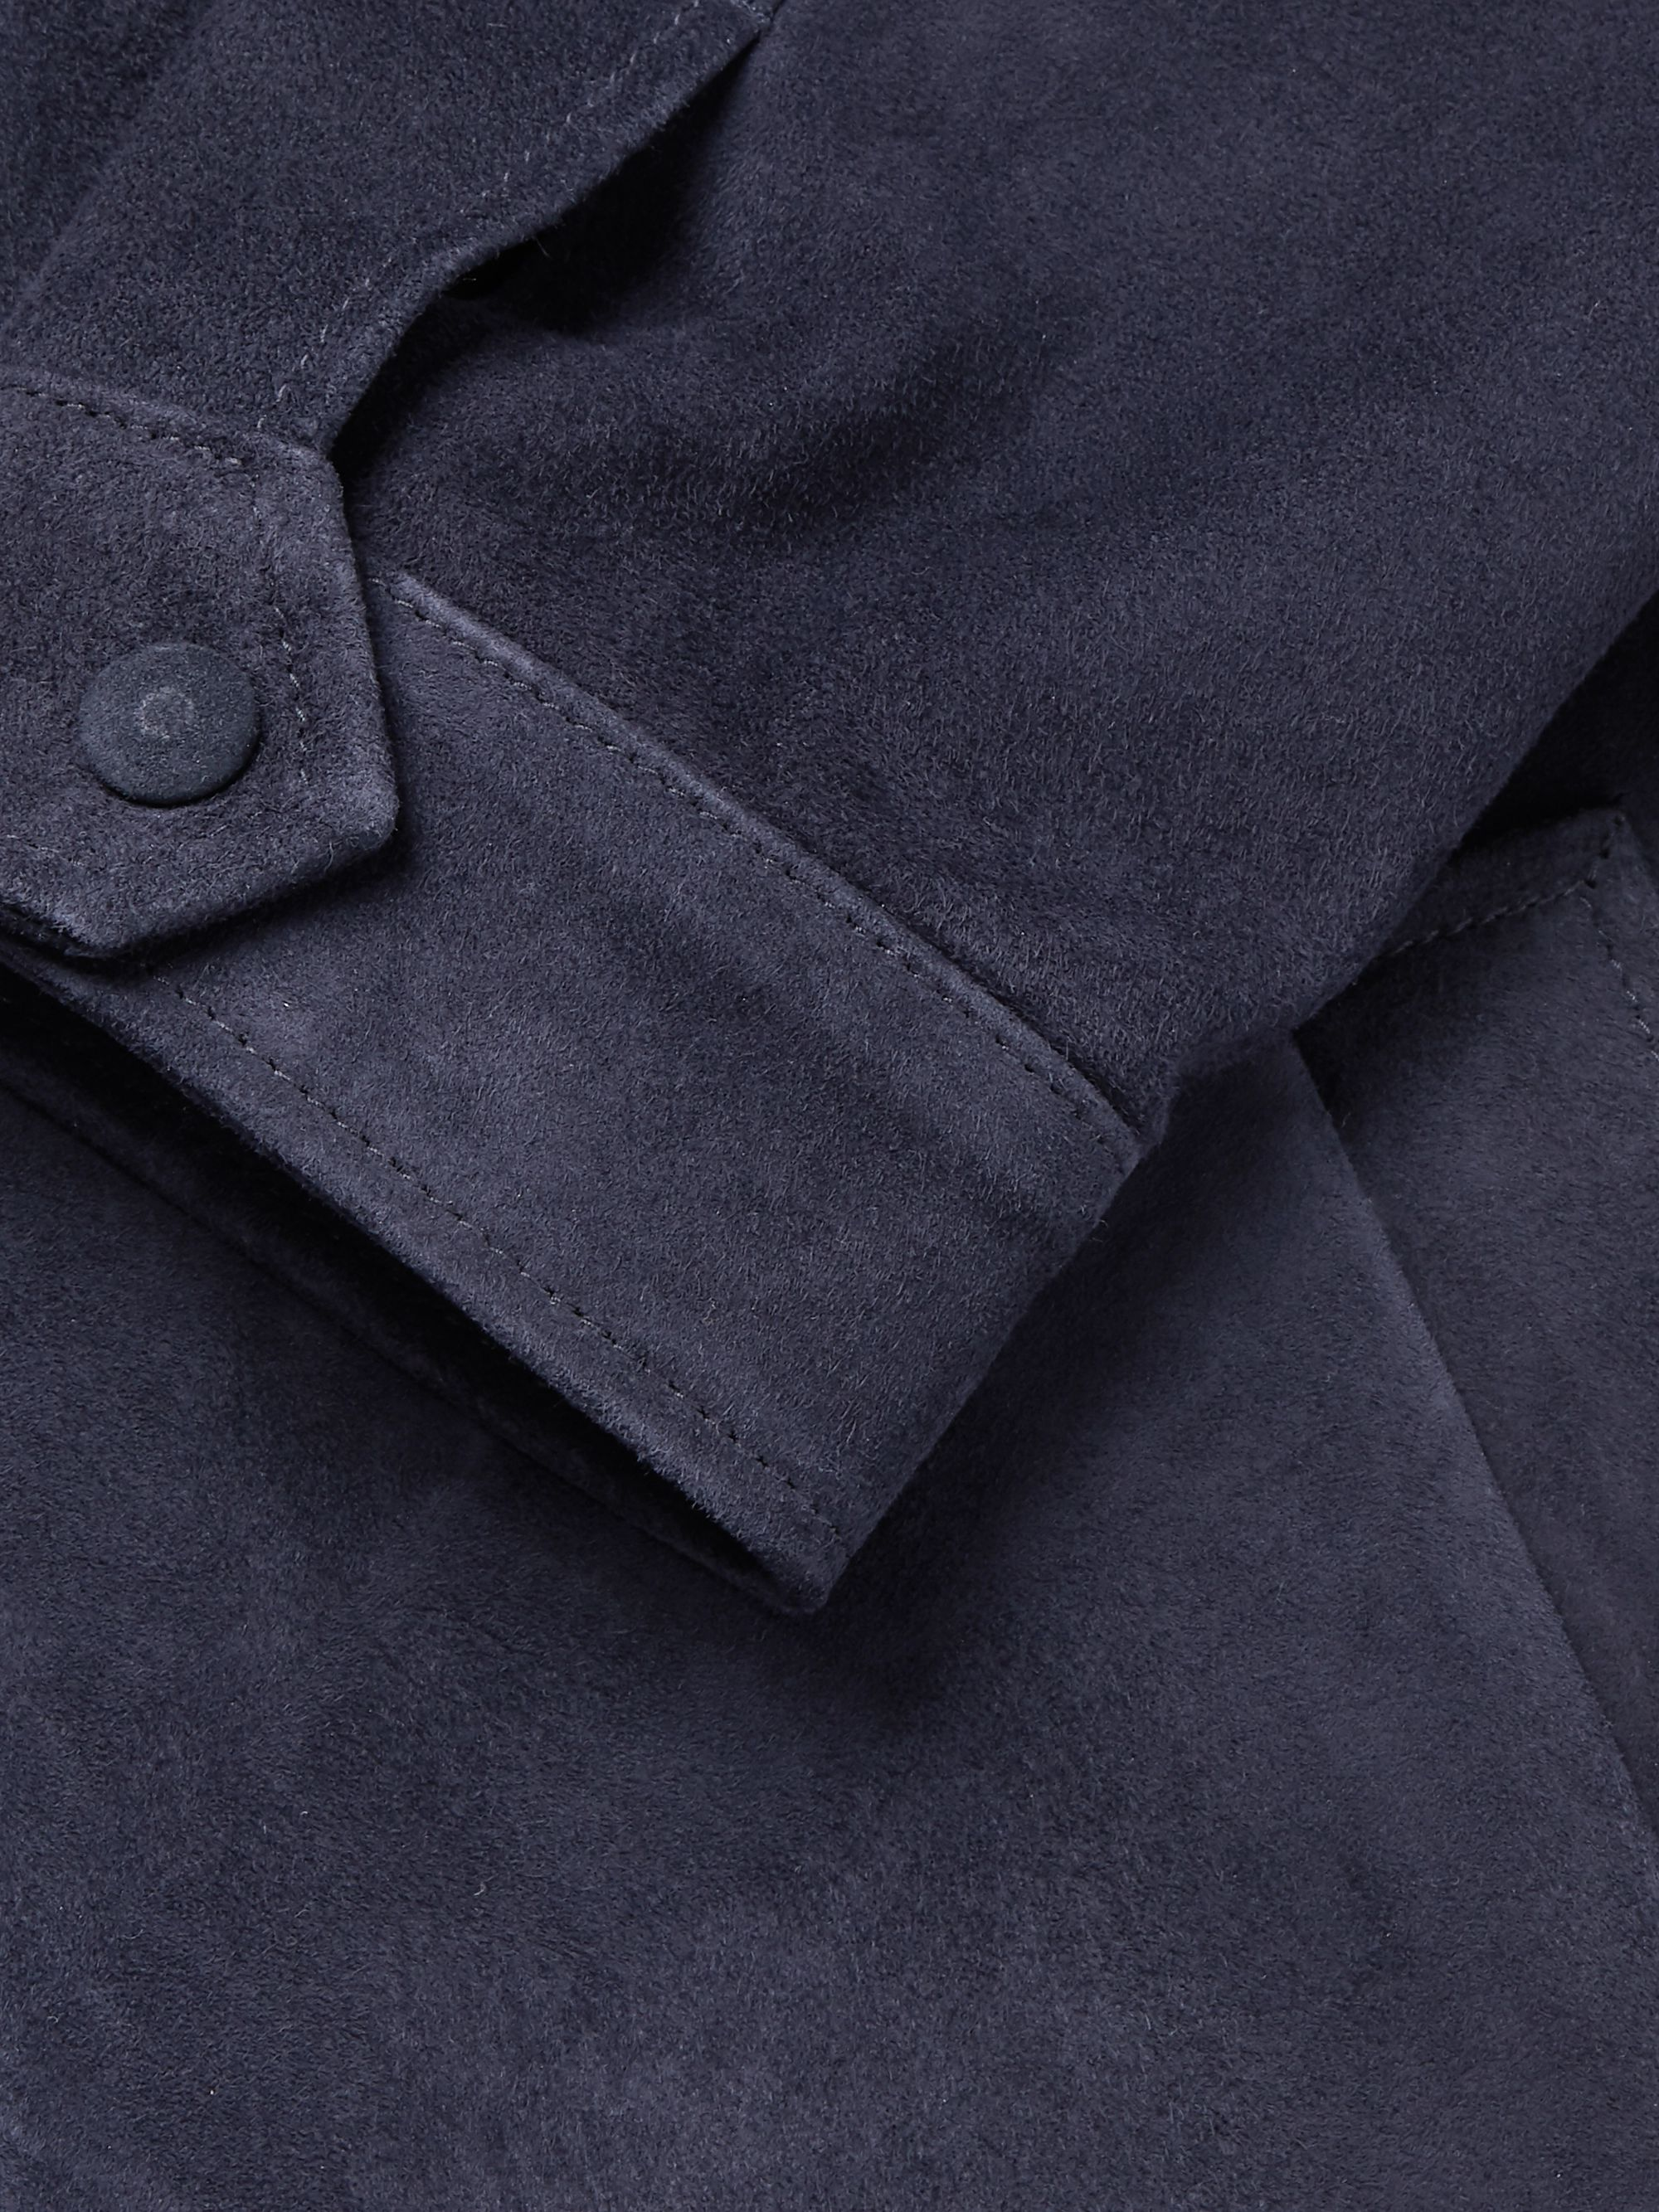 Officine Generale Suede Blouson Jacket